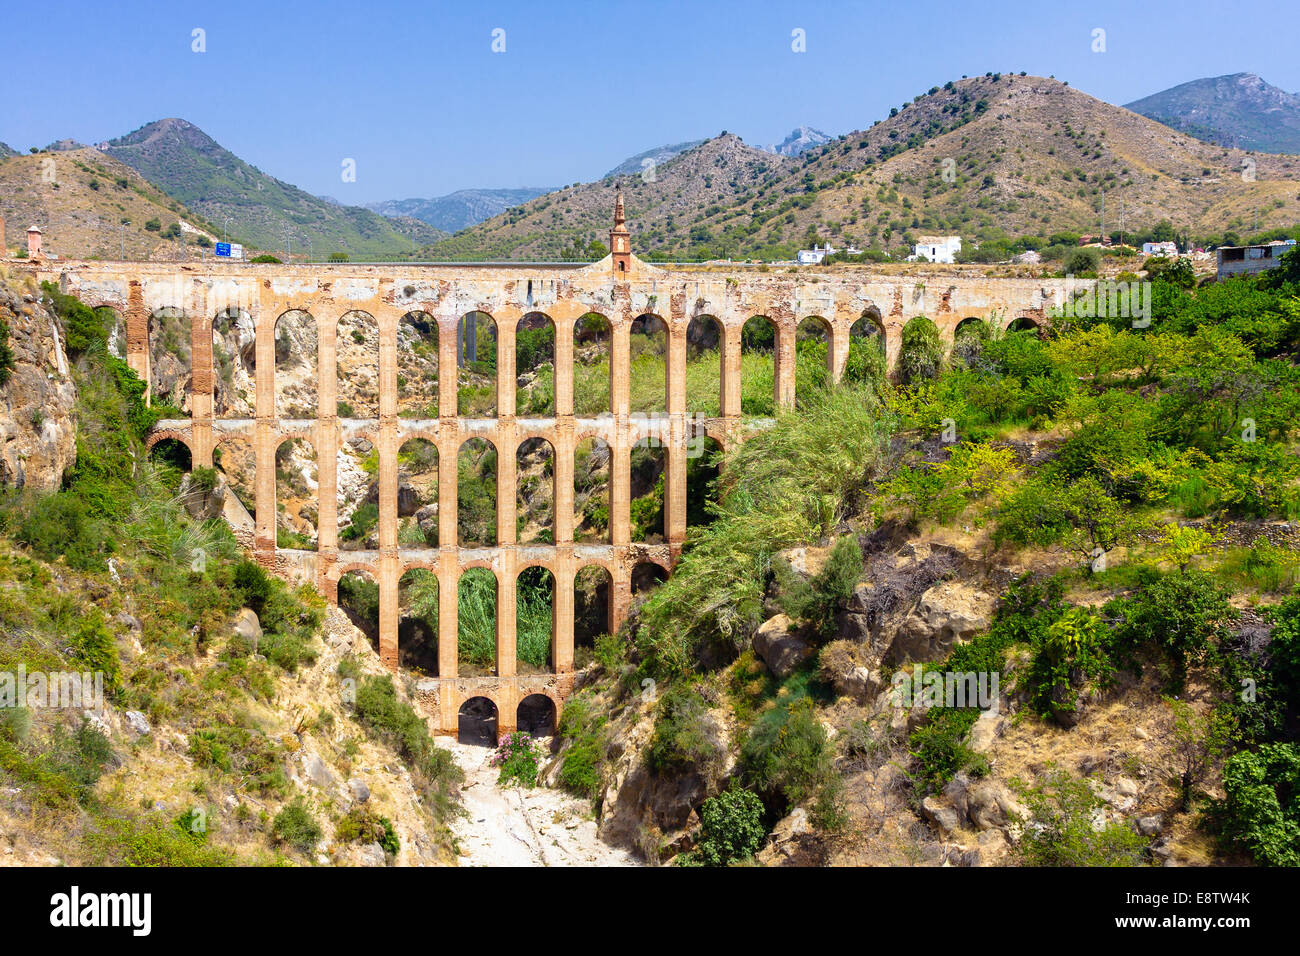 Old aqueduct in Nerja, Spain - Stock Image